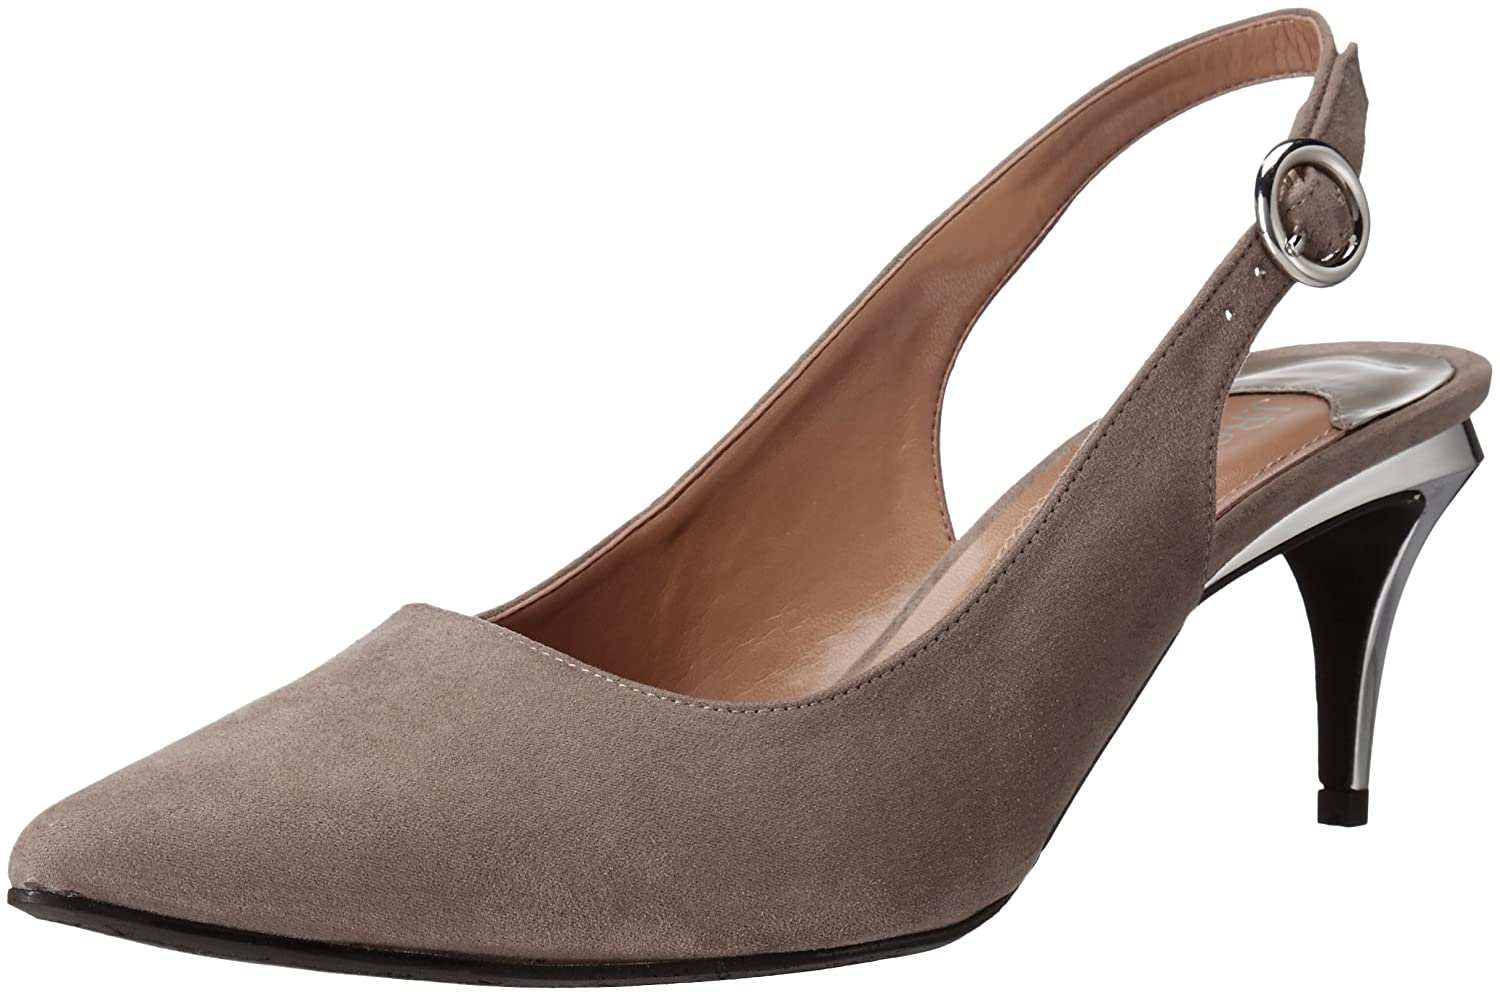 J.Renee Women's Pearla Dress Pump B01INJKX88 10.5 W US|Gray Suede